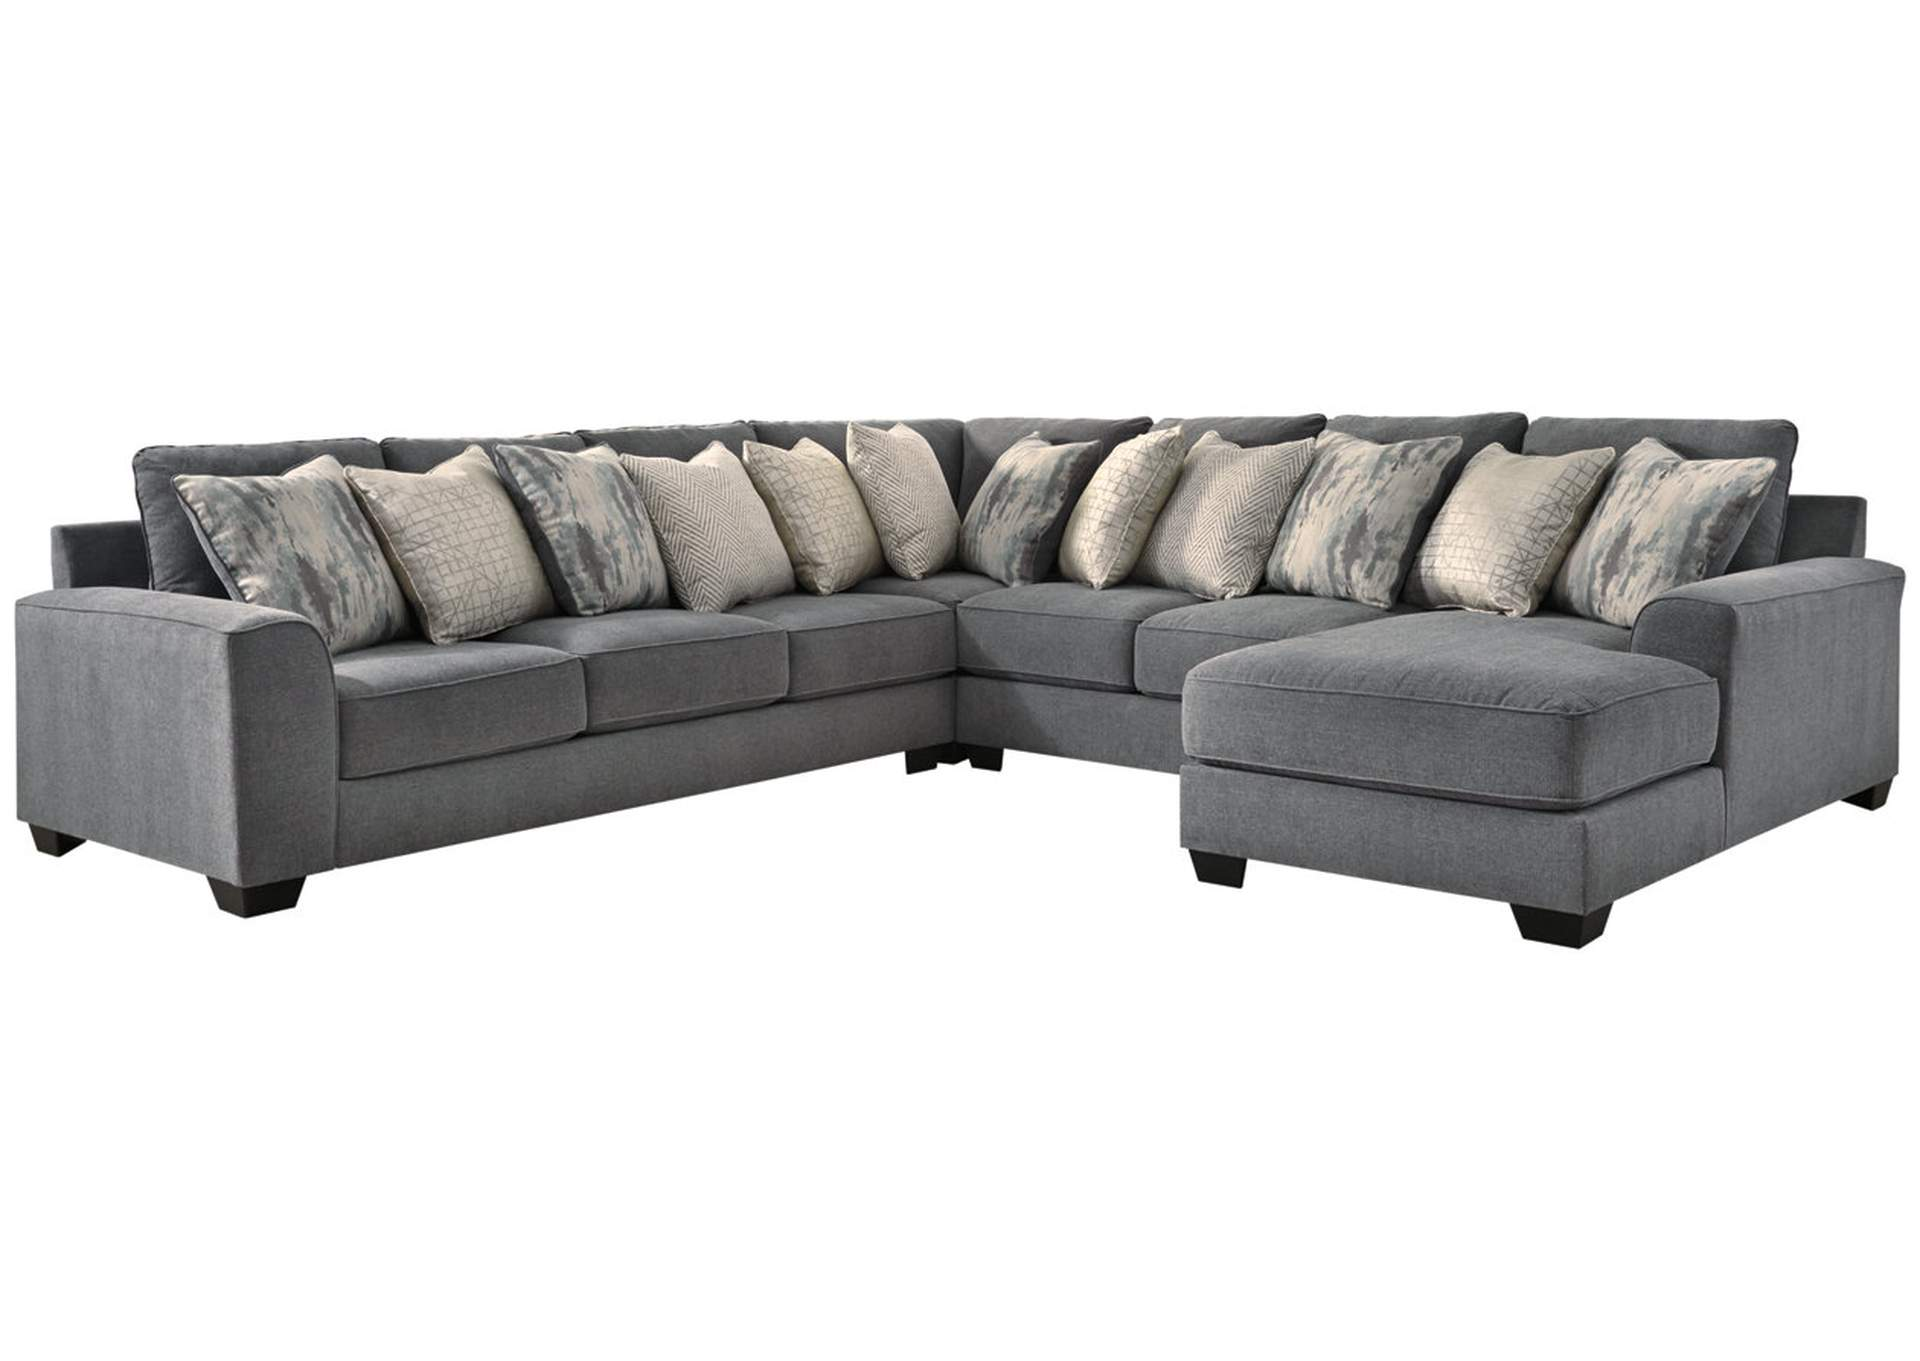 Castano Jewel 4 Piece Chaise Sectional